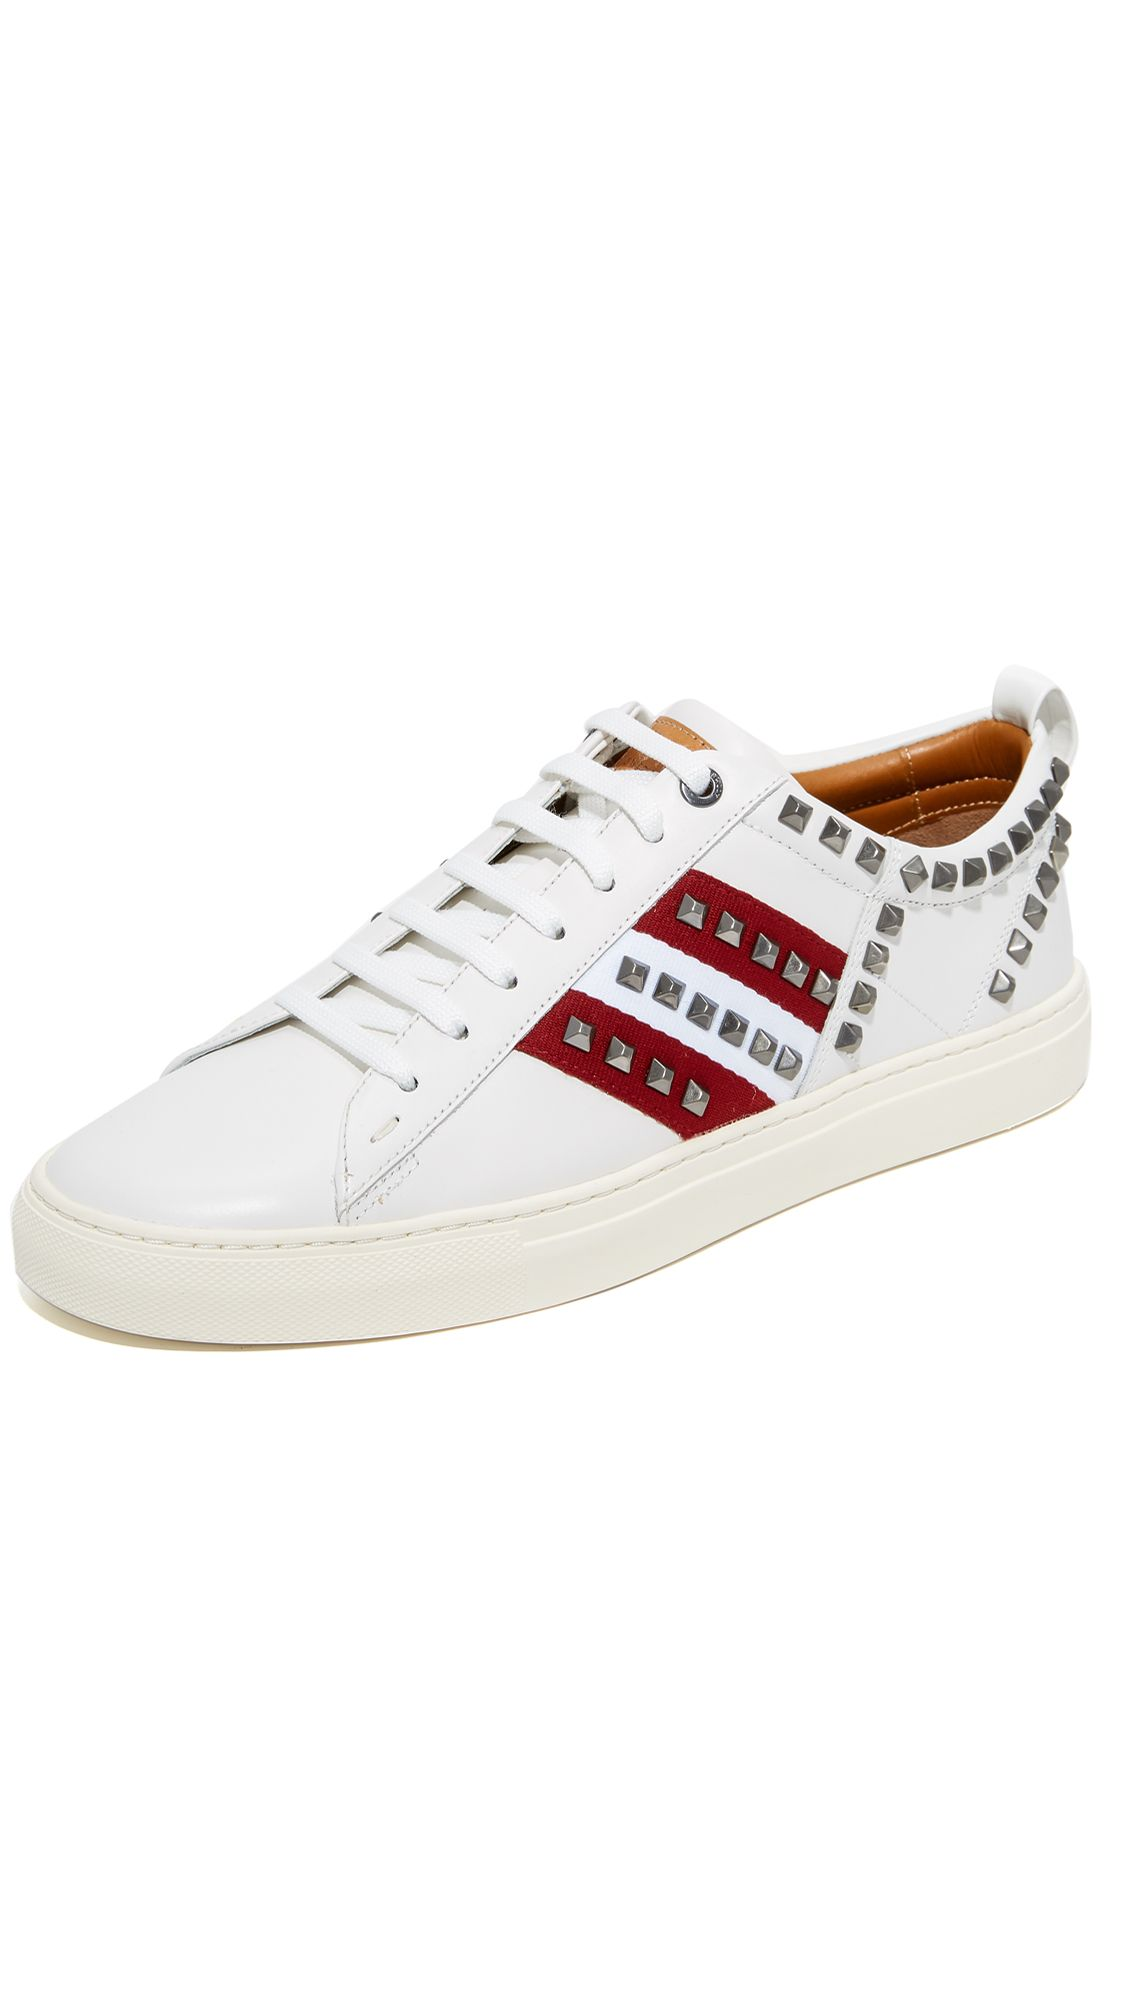 BALLY Helvio Studded Sneakers  #bally #shoes #sneakers